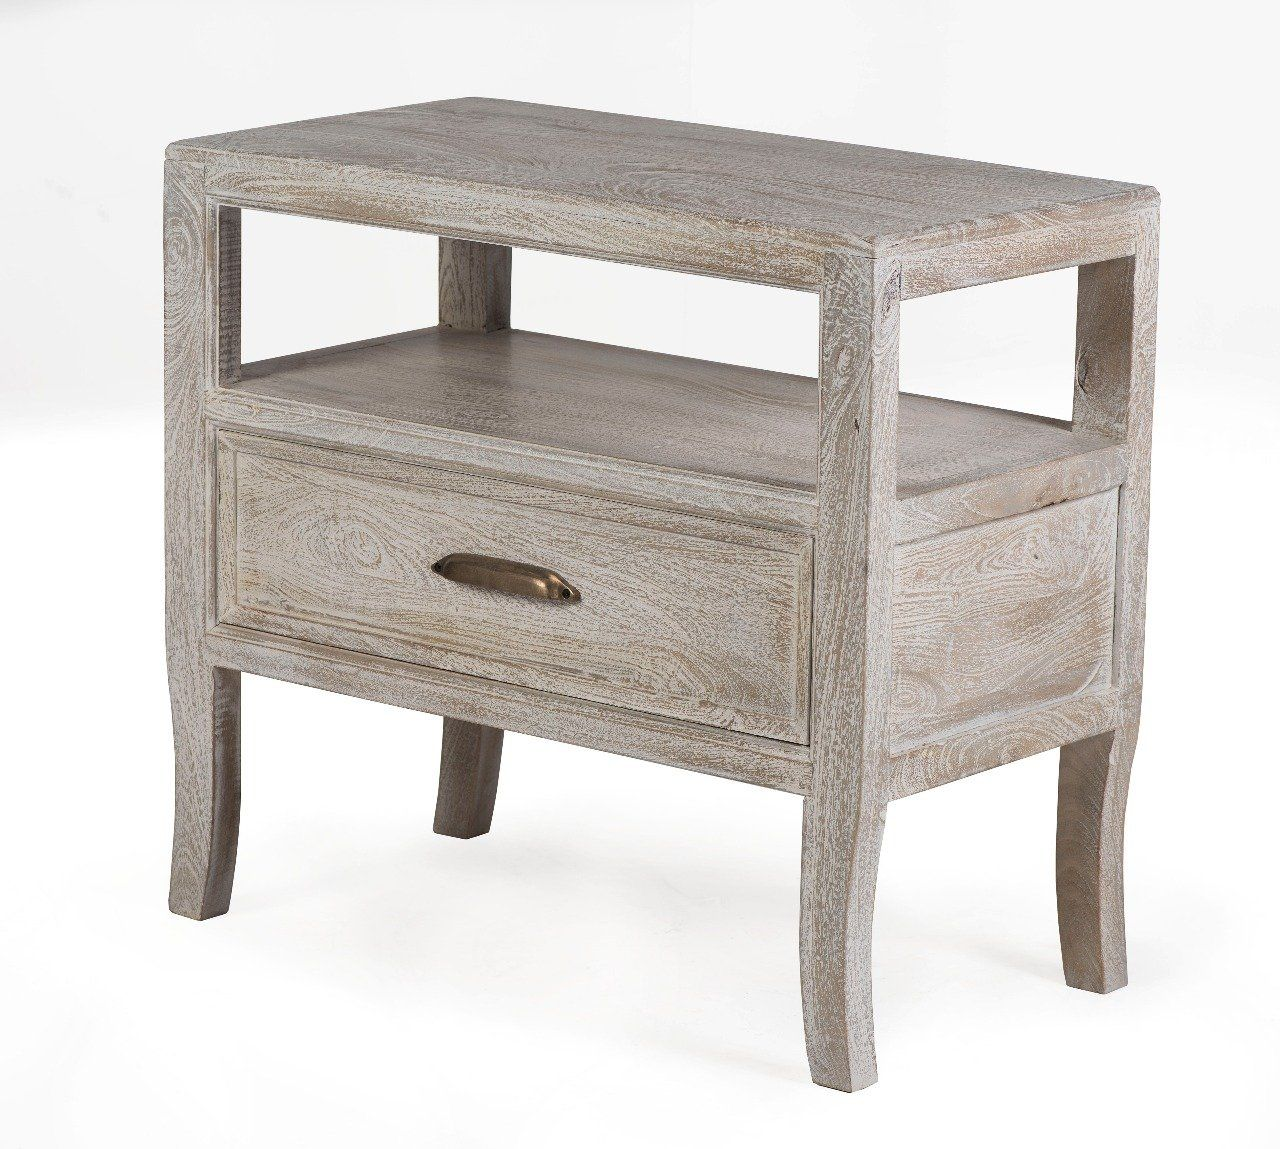 Maxine 31 Nightstand Gray Wash Nightstand Grey Wash Home Decor